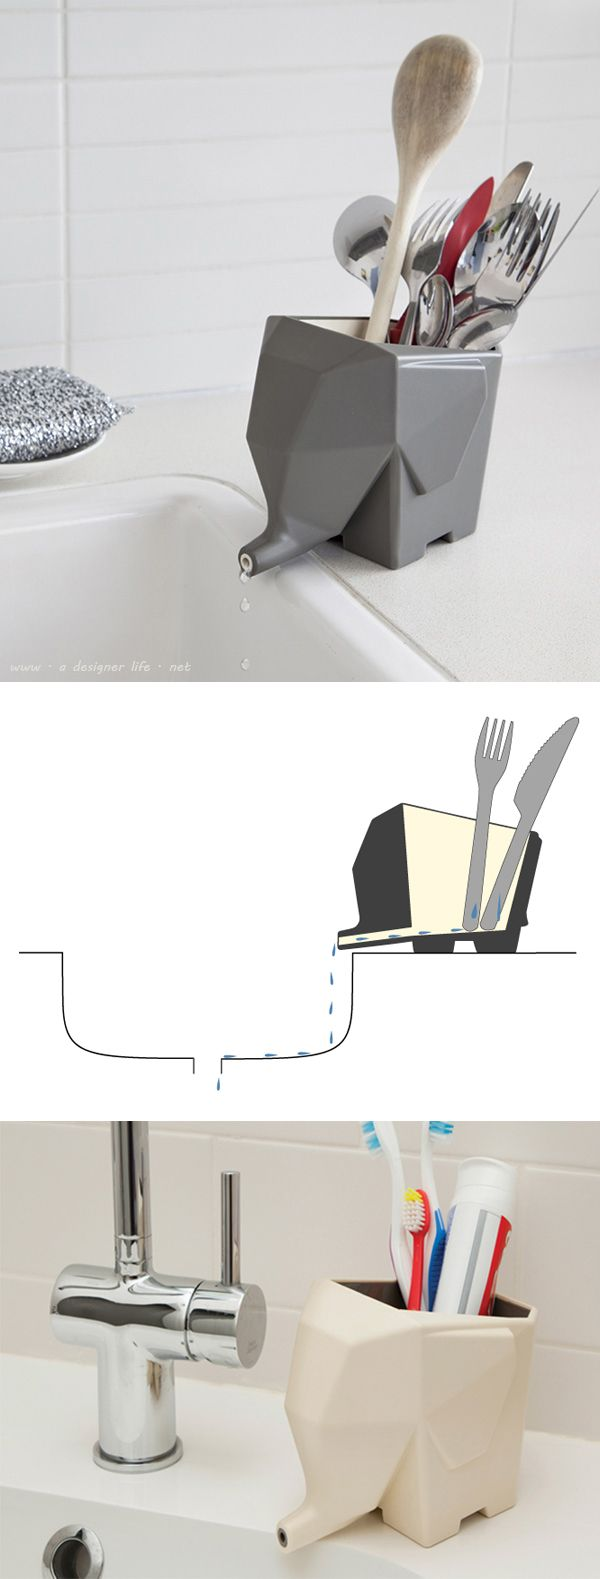 Genius III Elephant Cutlery Drainer by Peleg - his trunk directs the runoff water back into the sink! #industrial_design #product_design